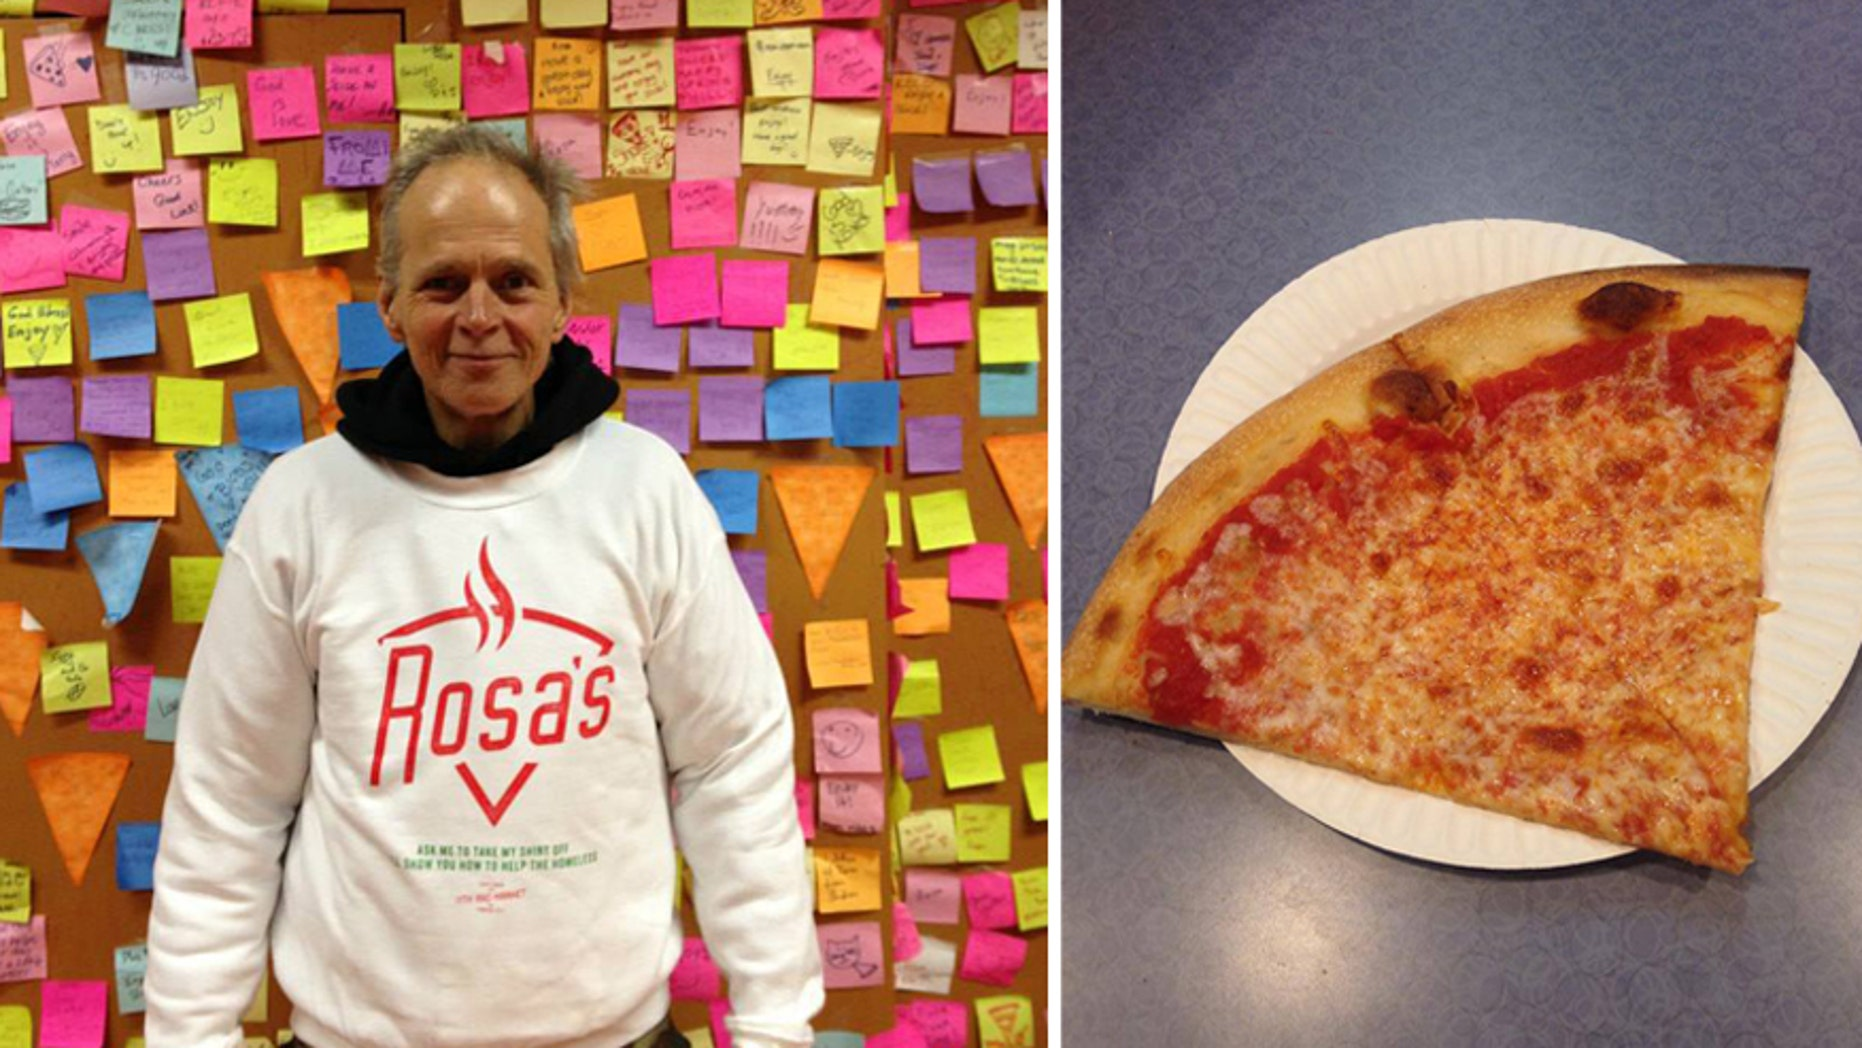 A pizza shop on a mission to end homeless hunger.